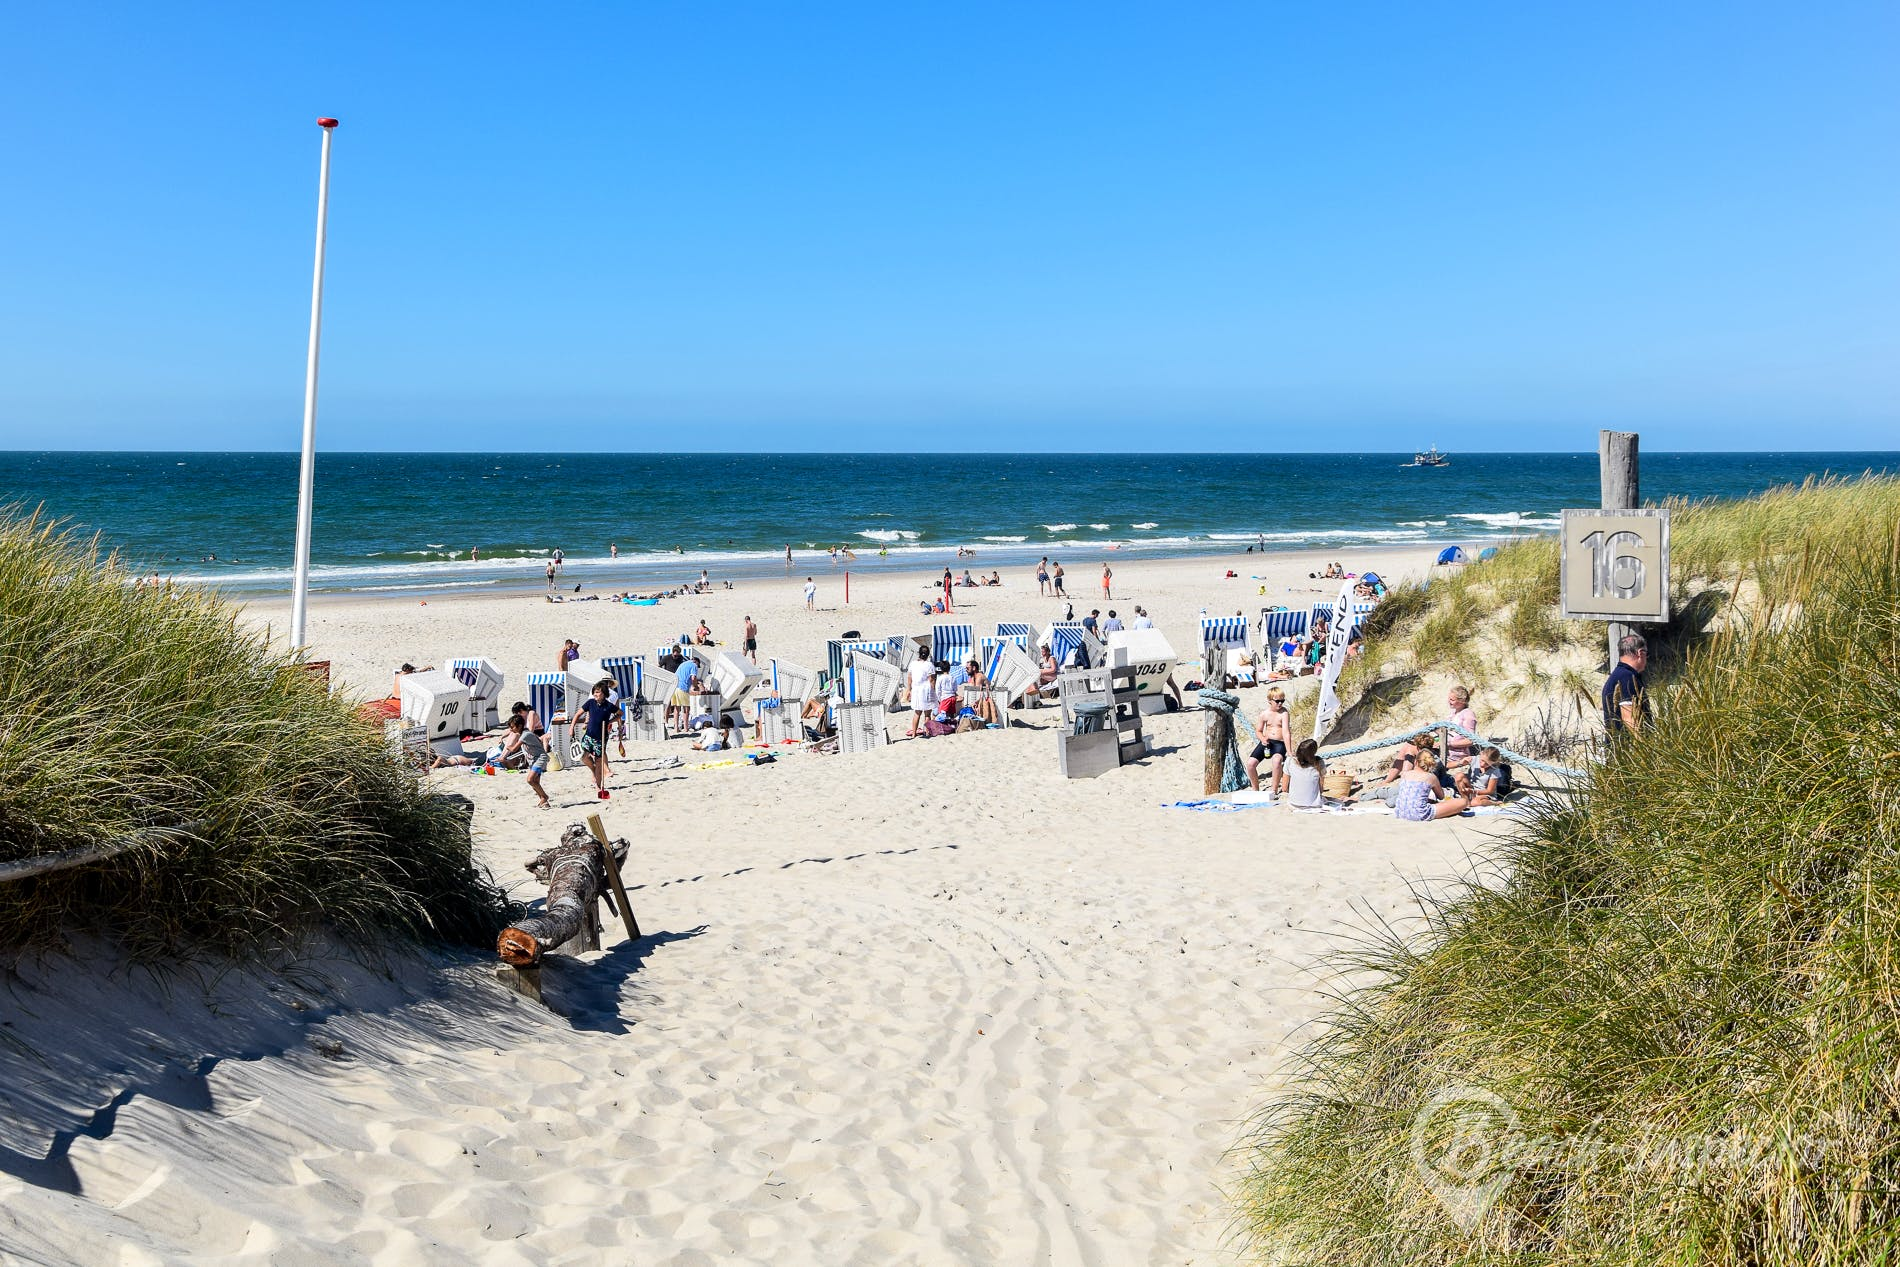 Beach Buhne 16, Sylt, Germany